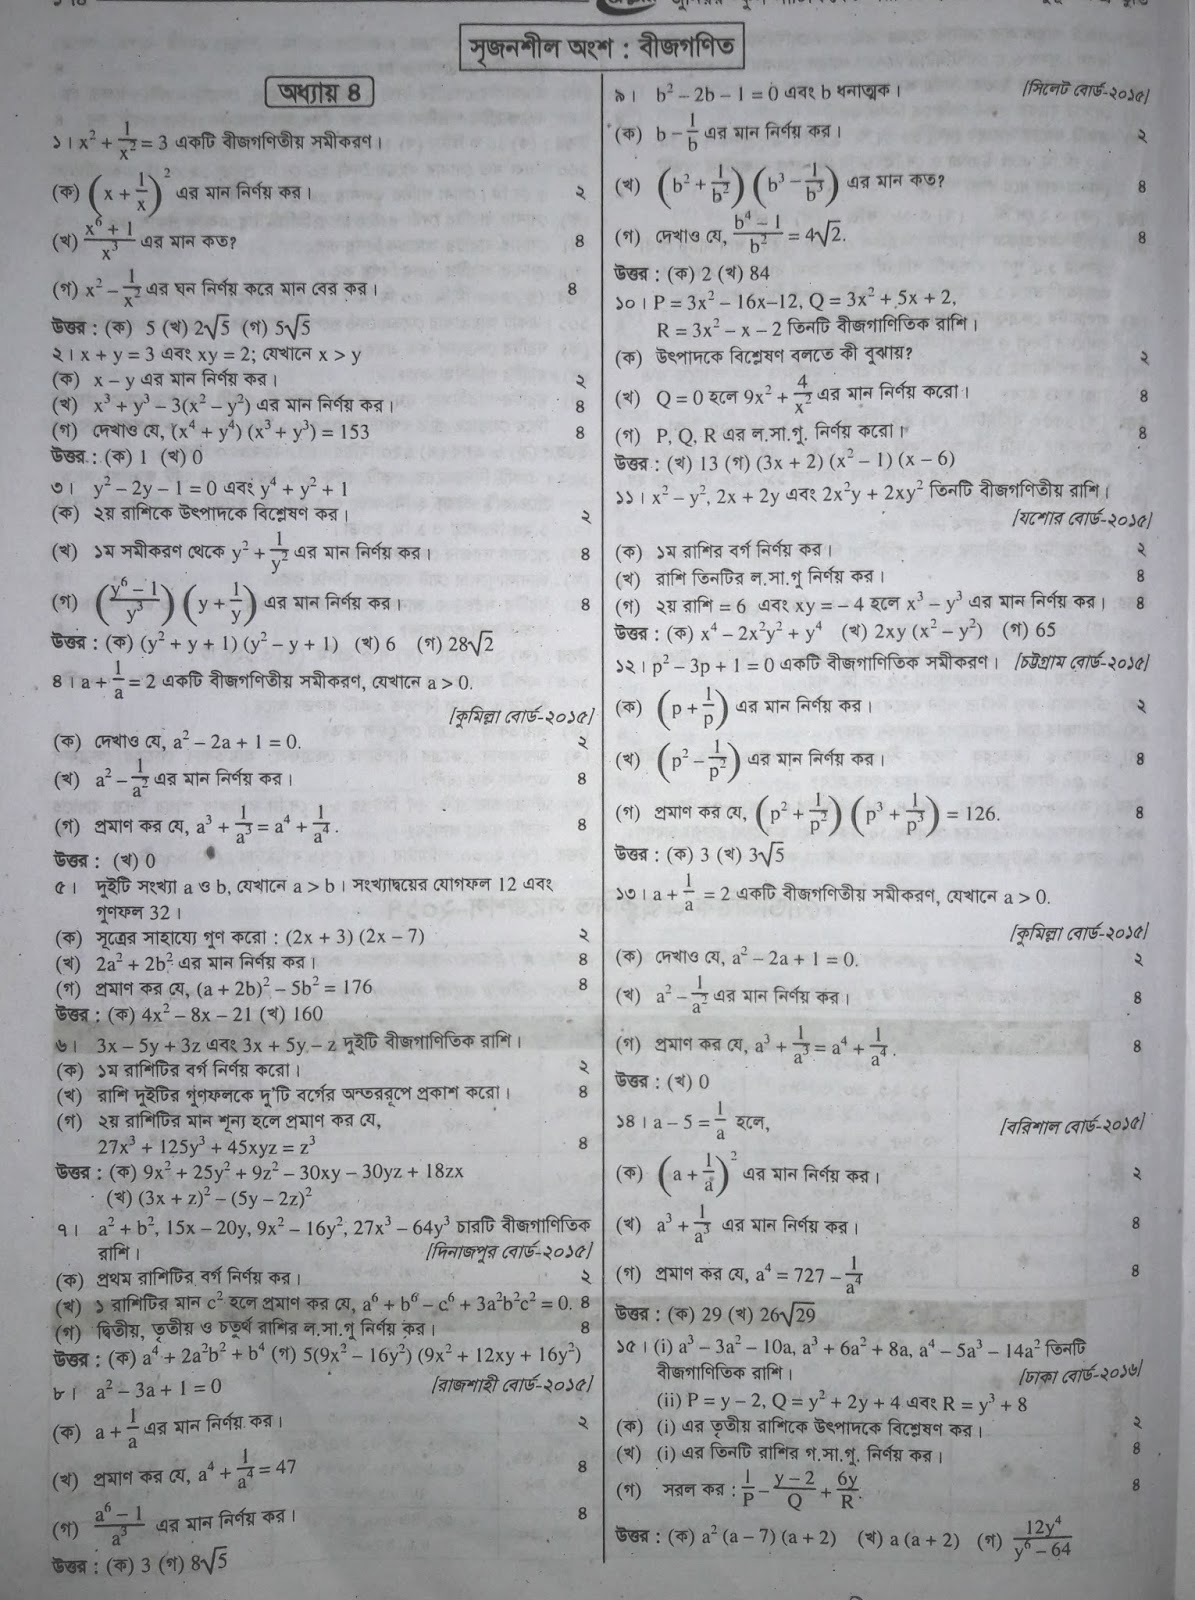 jsc math suggestion, exam question paper, model question, mcq question, question pattern, preparation for dhaka board, all boards